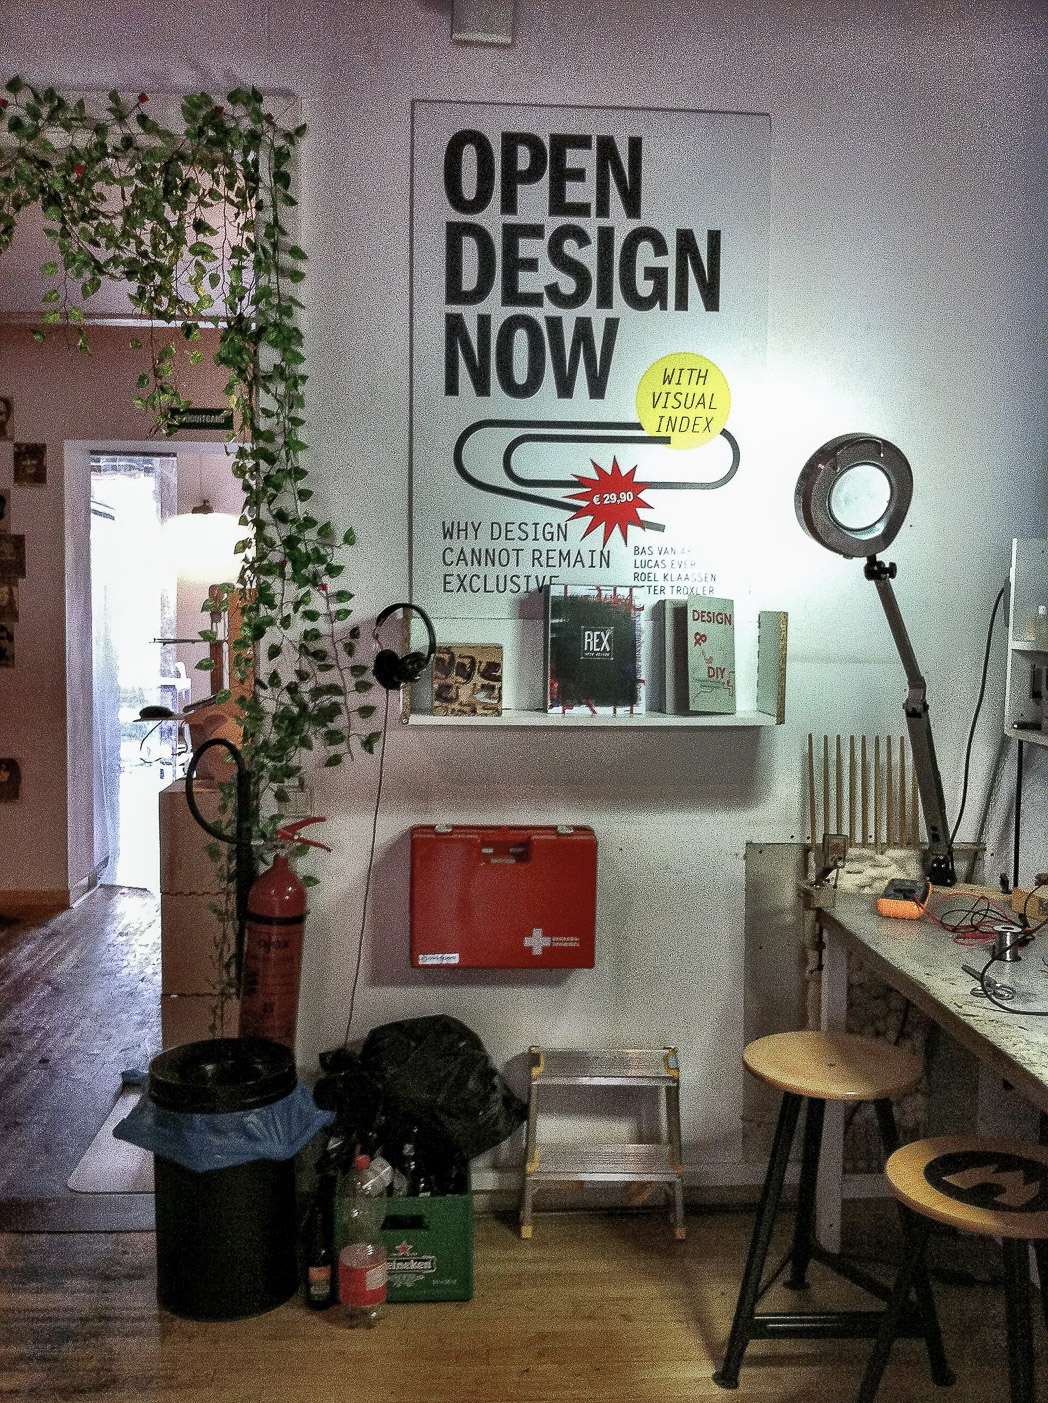 photograph inside FabLab Amsterdam. the electronics soldering desk is visible on the right and in the centre of the photo there is a display shelf showing some books. under the shelf is a first aid kid, a small step ladder, a beverages craft and a rubbish bin. on the left there is a doorway with a vine plant growing up the wall and over the doorway. the main focus in the photo is a large poster on the wall which is the cover of the book Open Design Now